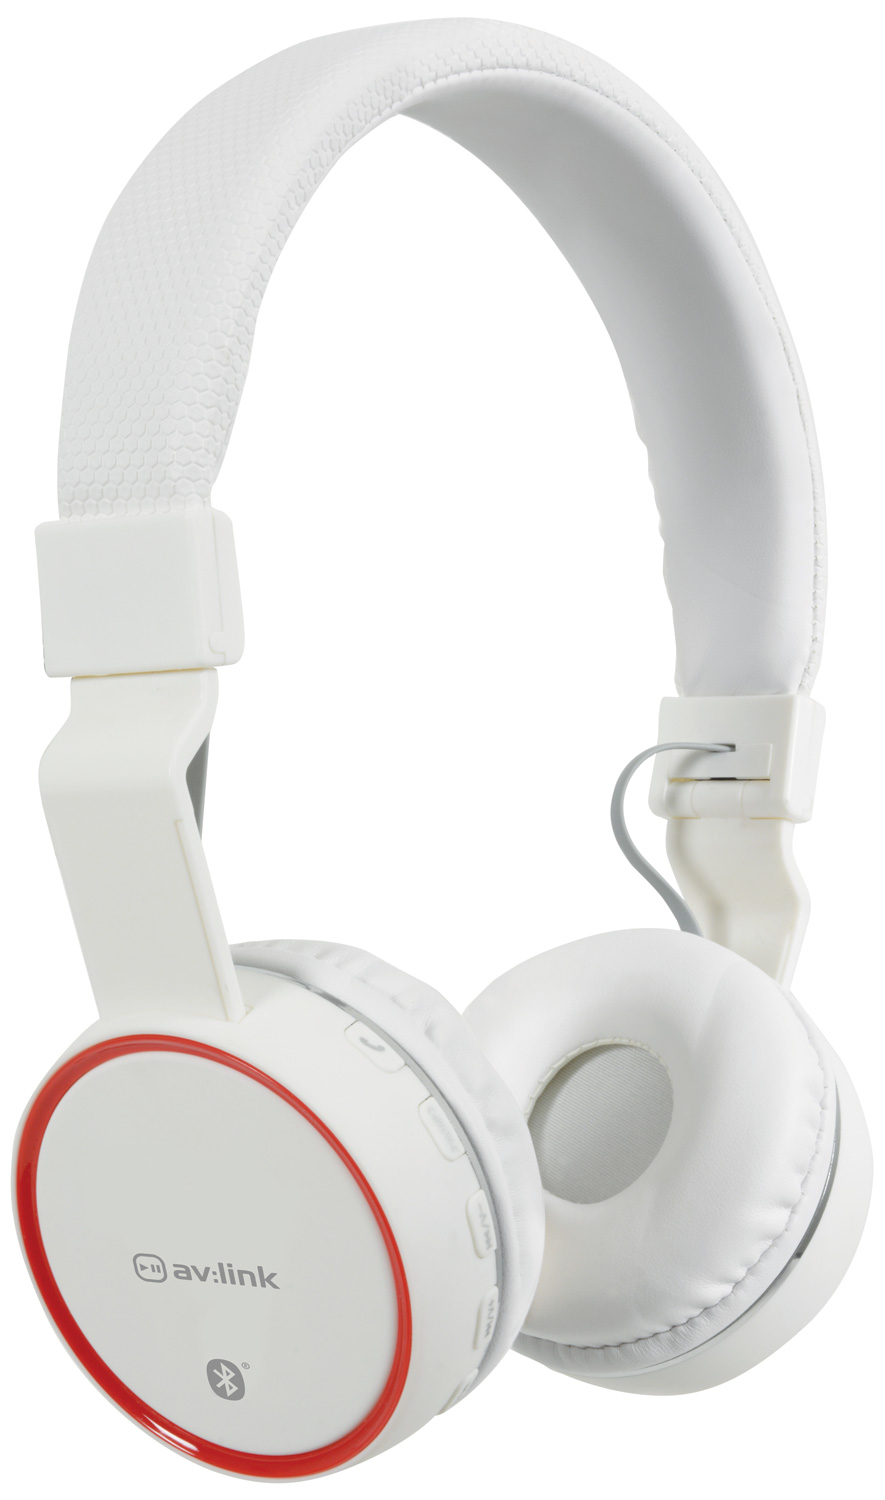 avlink Wireless Bluetooth® Headphones White